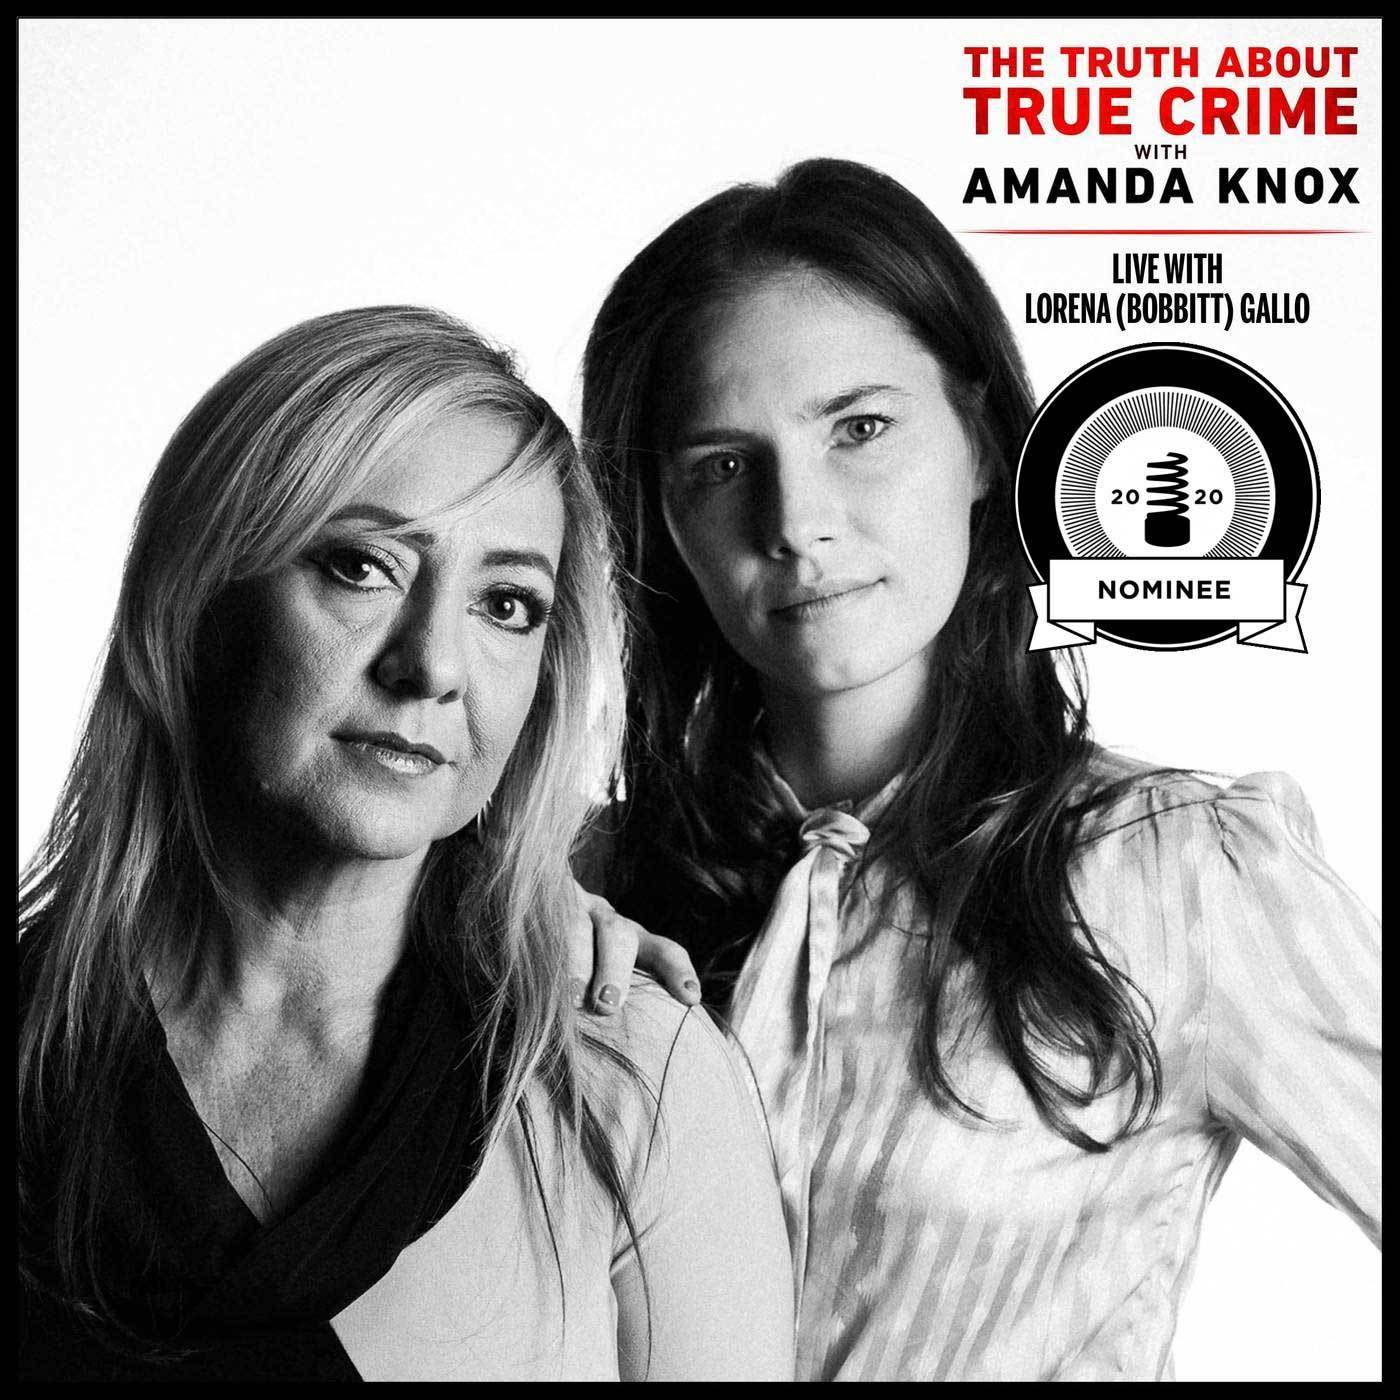 Bonus Episode: Amanda and Lorena (Bobbitt) Gallo LIVE